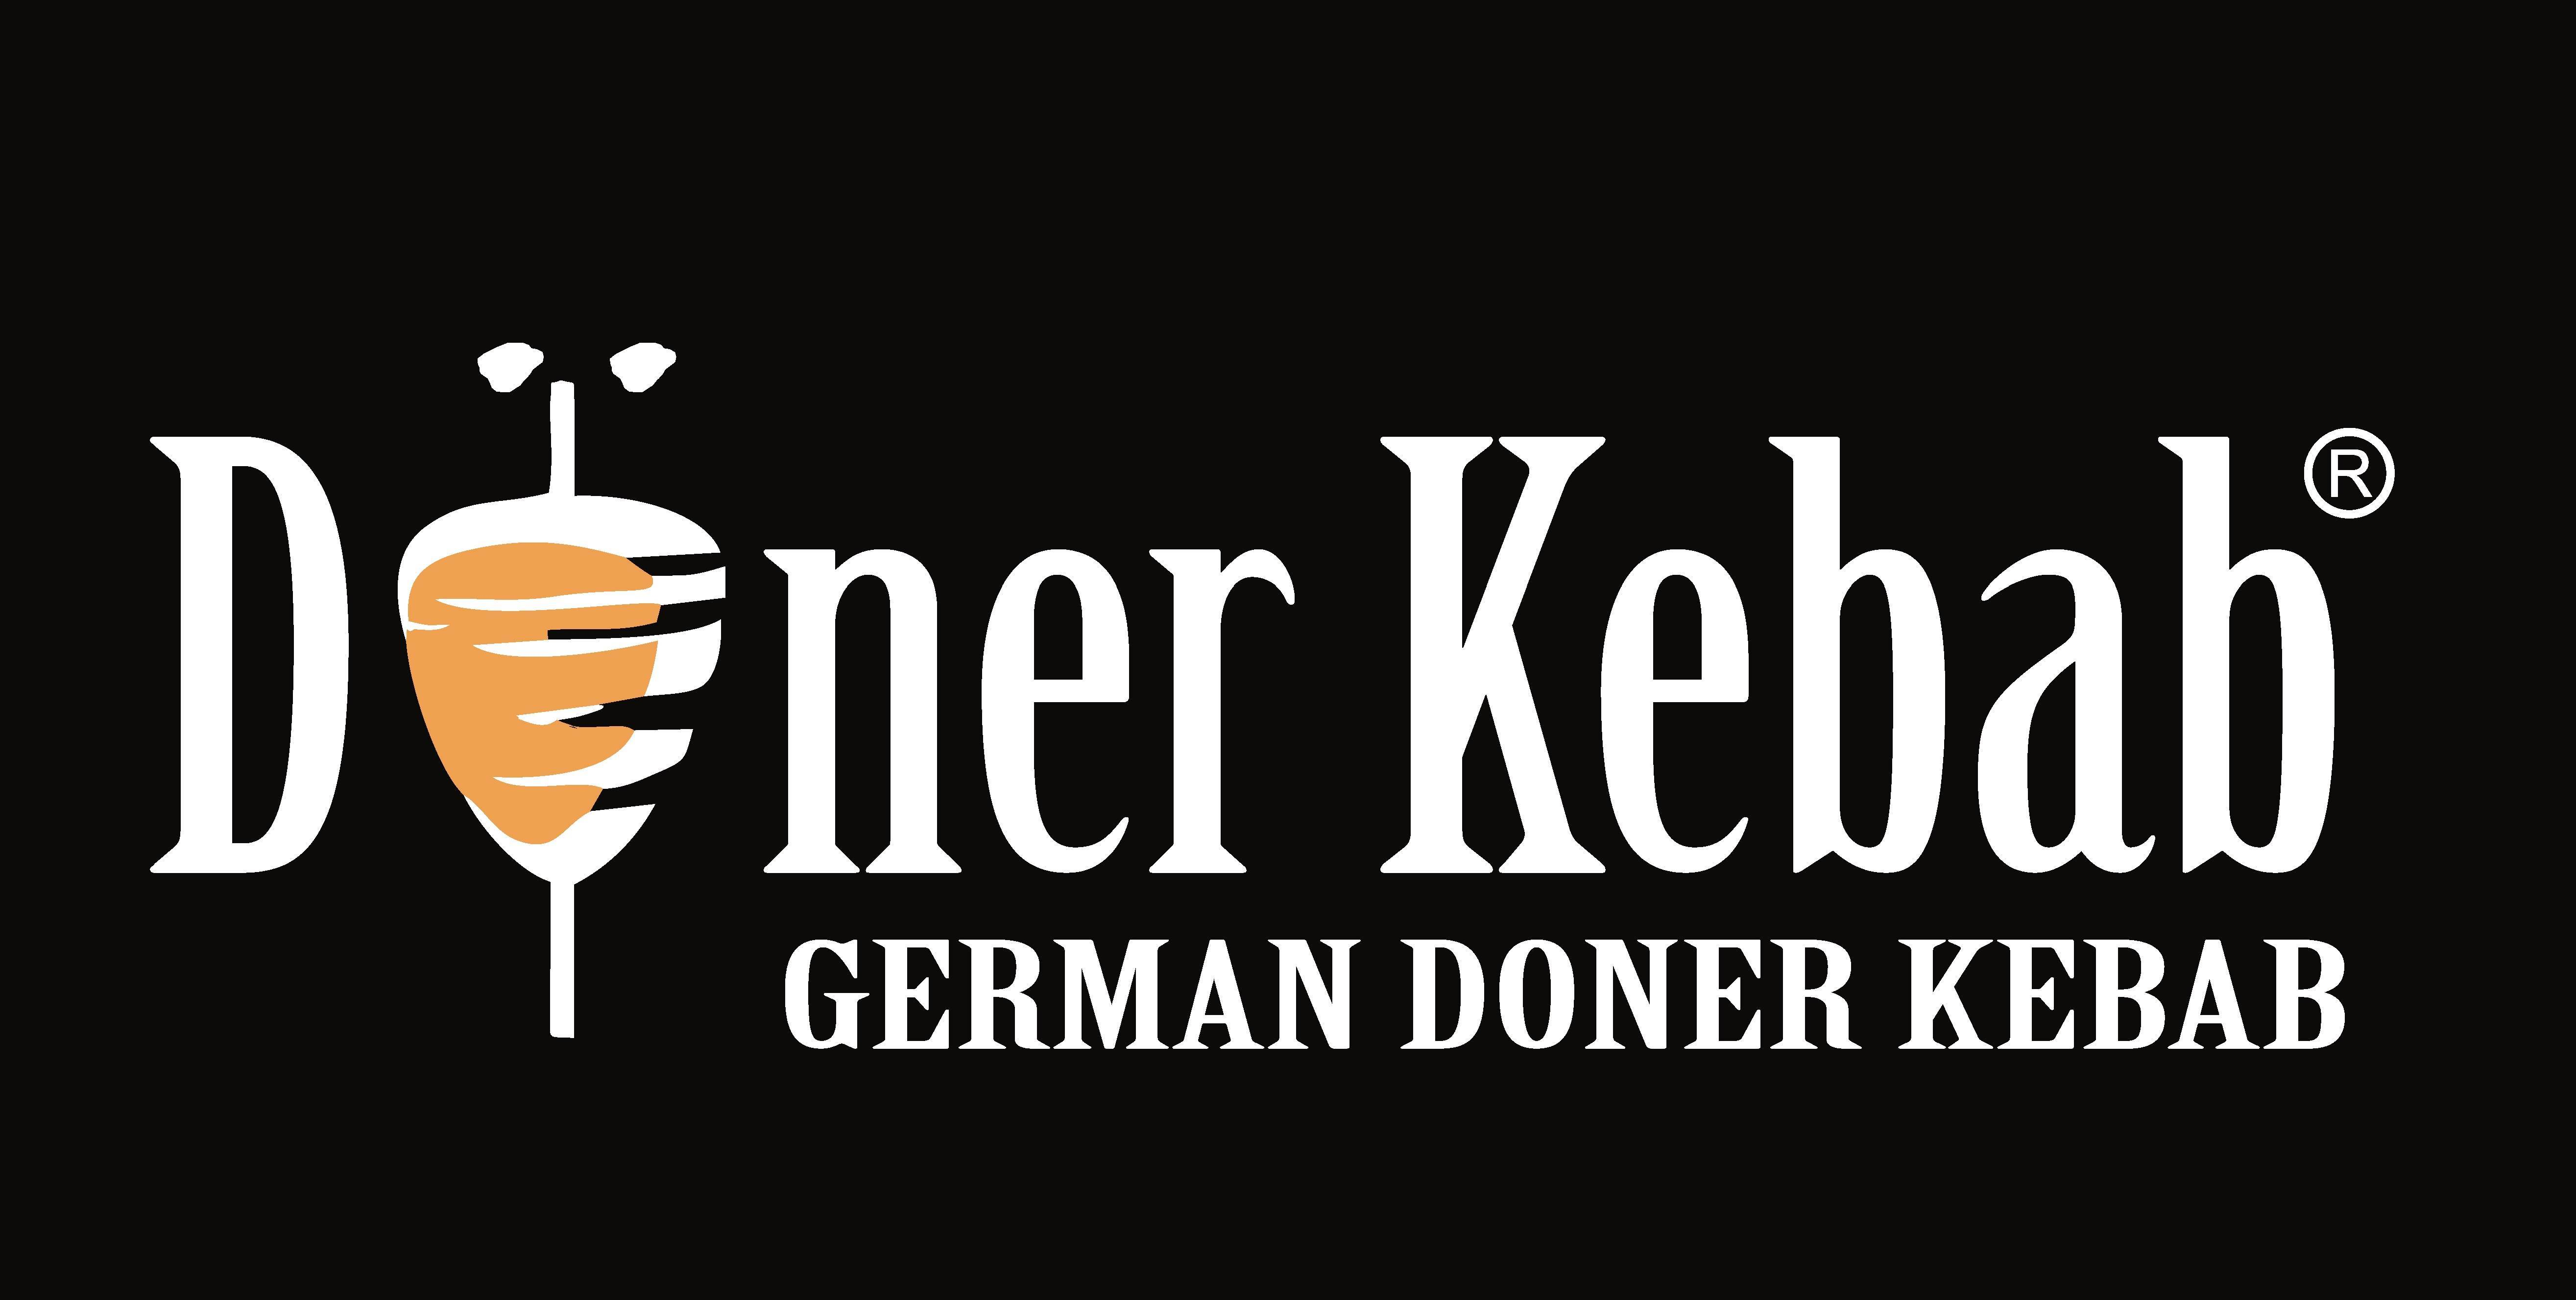 HSBC INTERNATIONAL PAVILION: German Doner Kebab